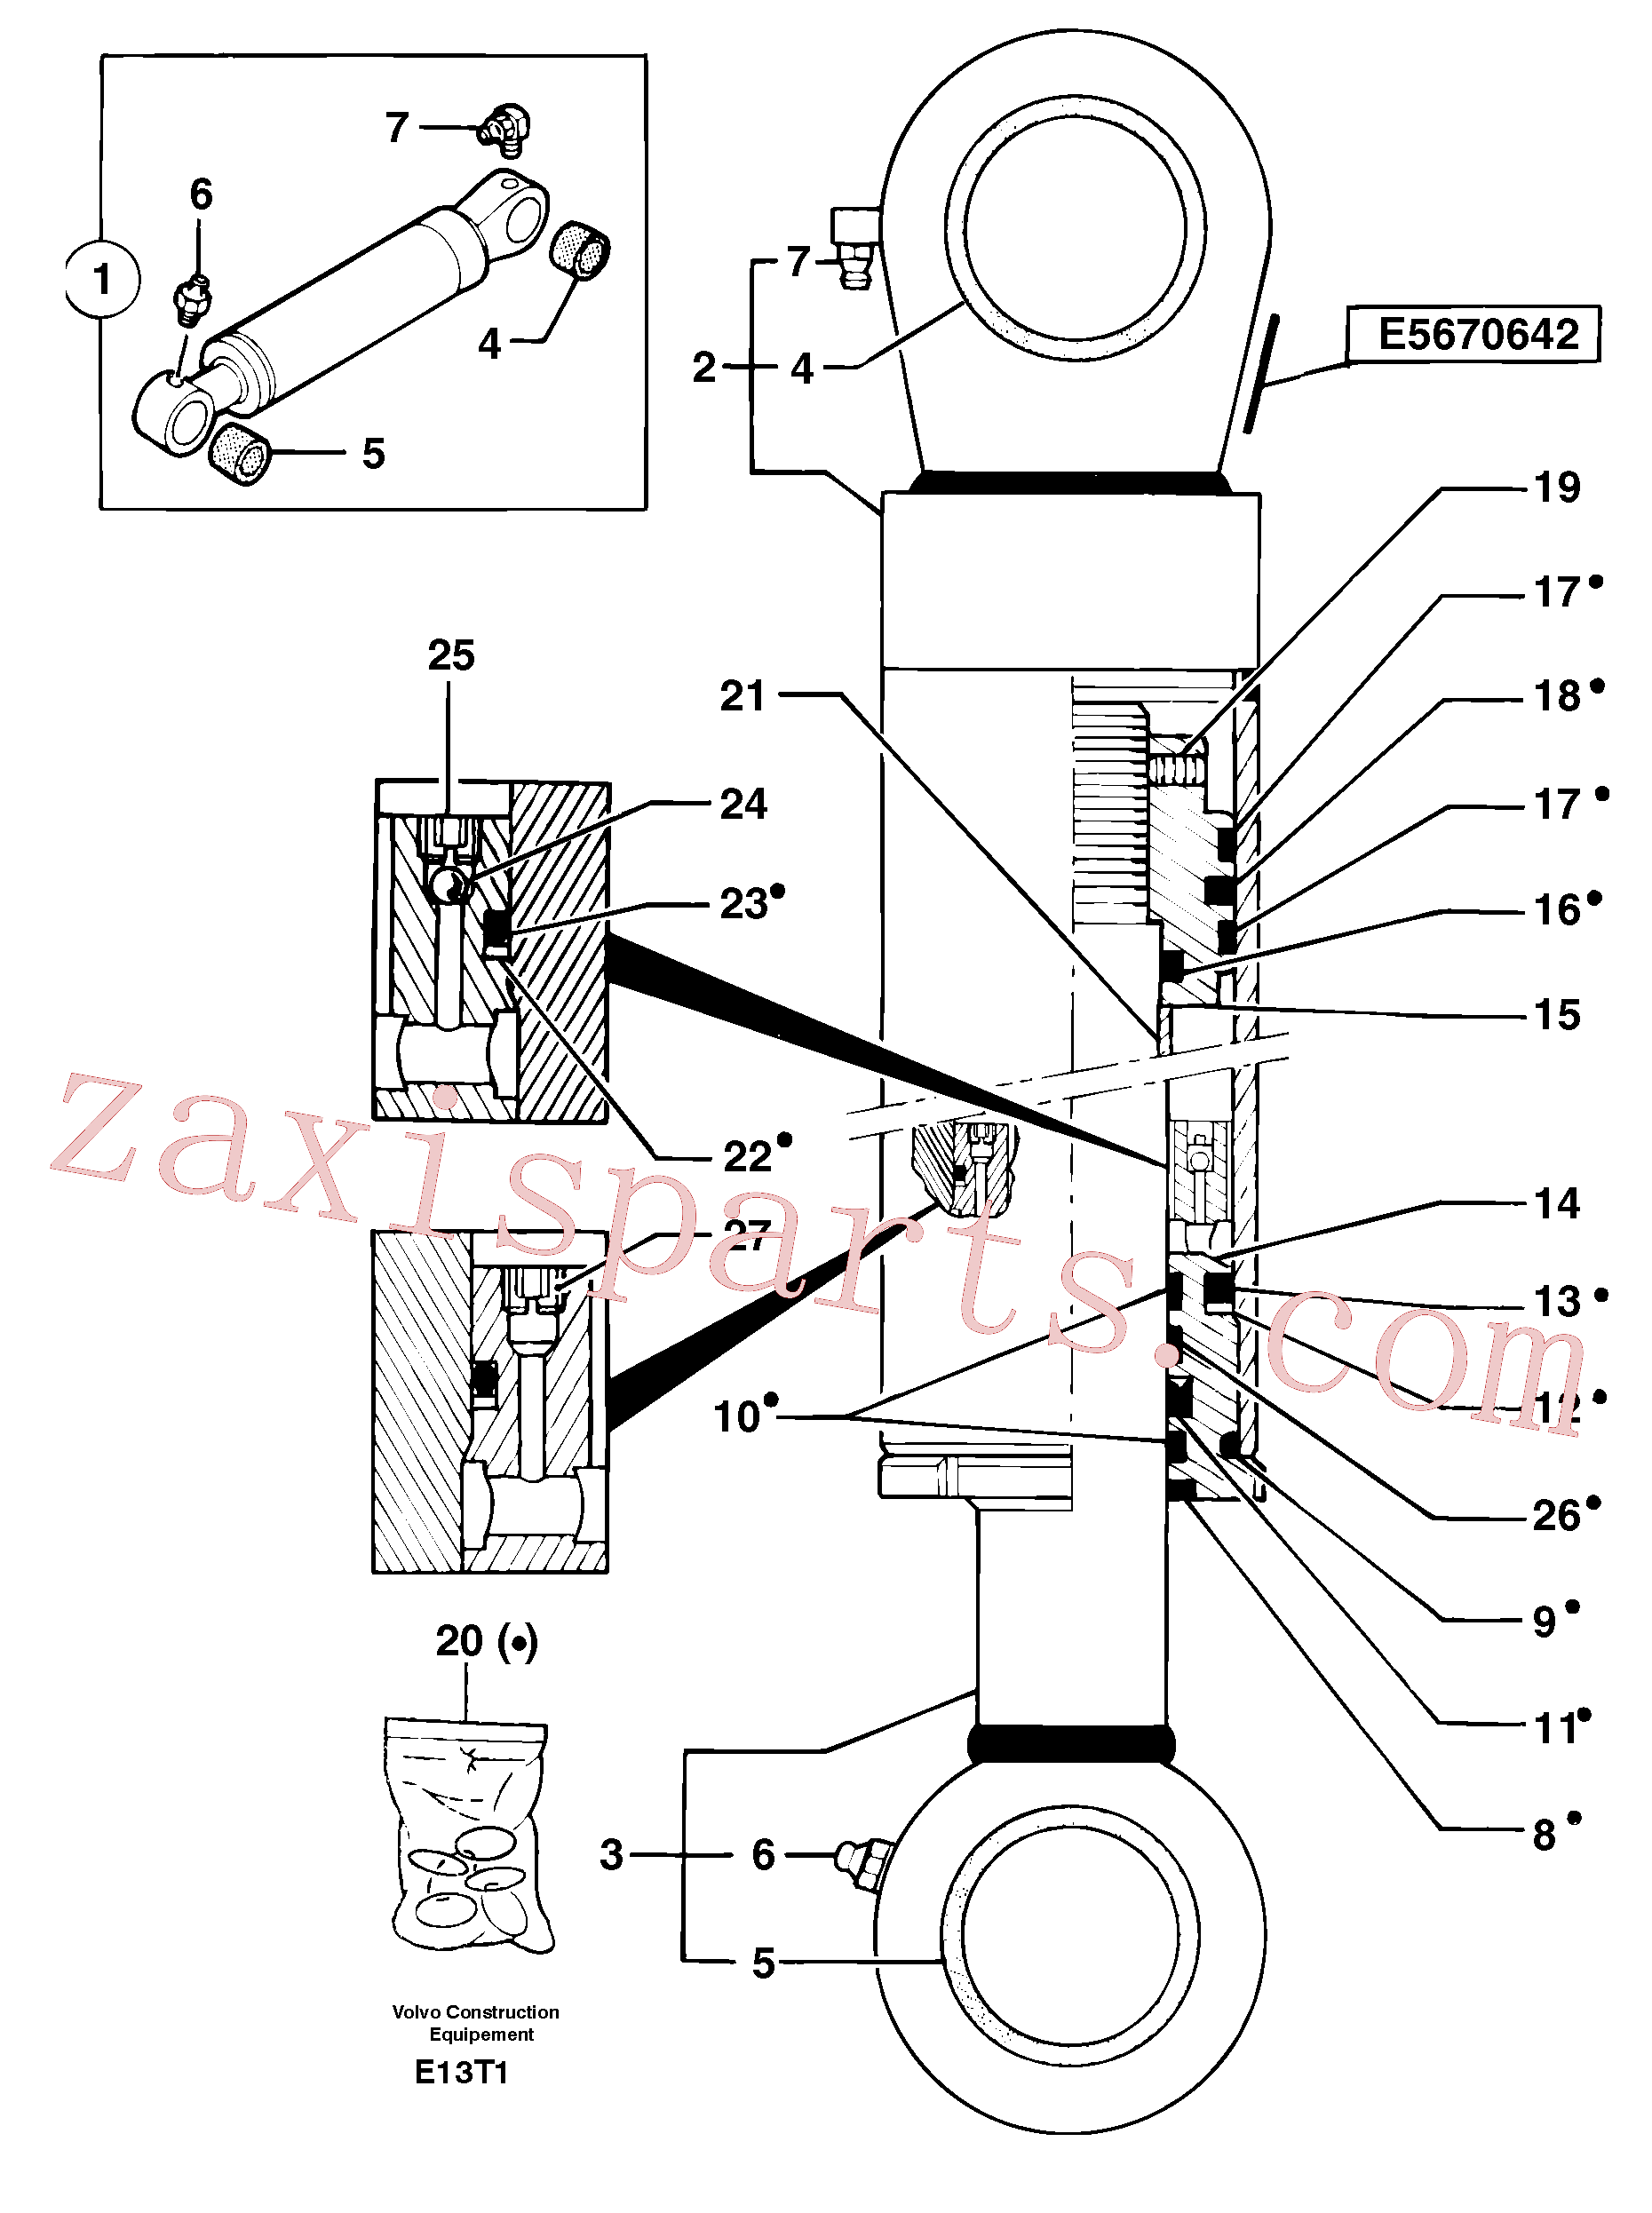 PJ3870066 for Volvo Boom cylinder(E13T1 assembly)